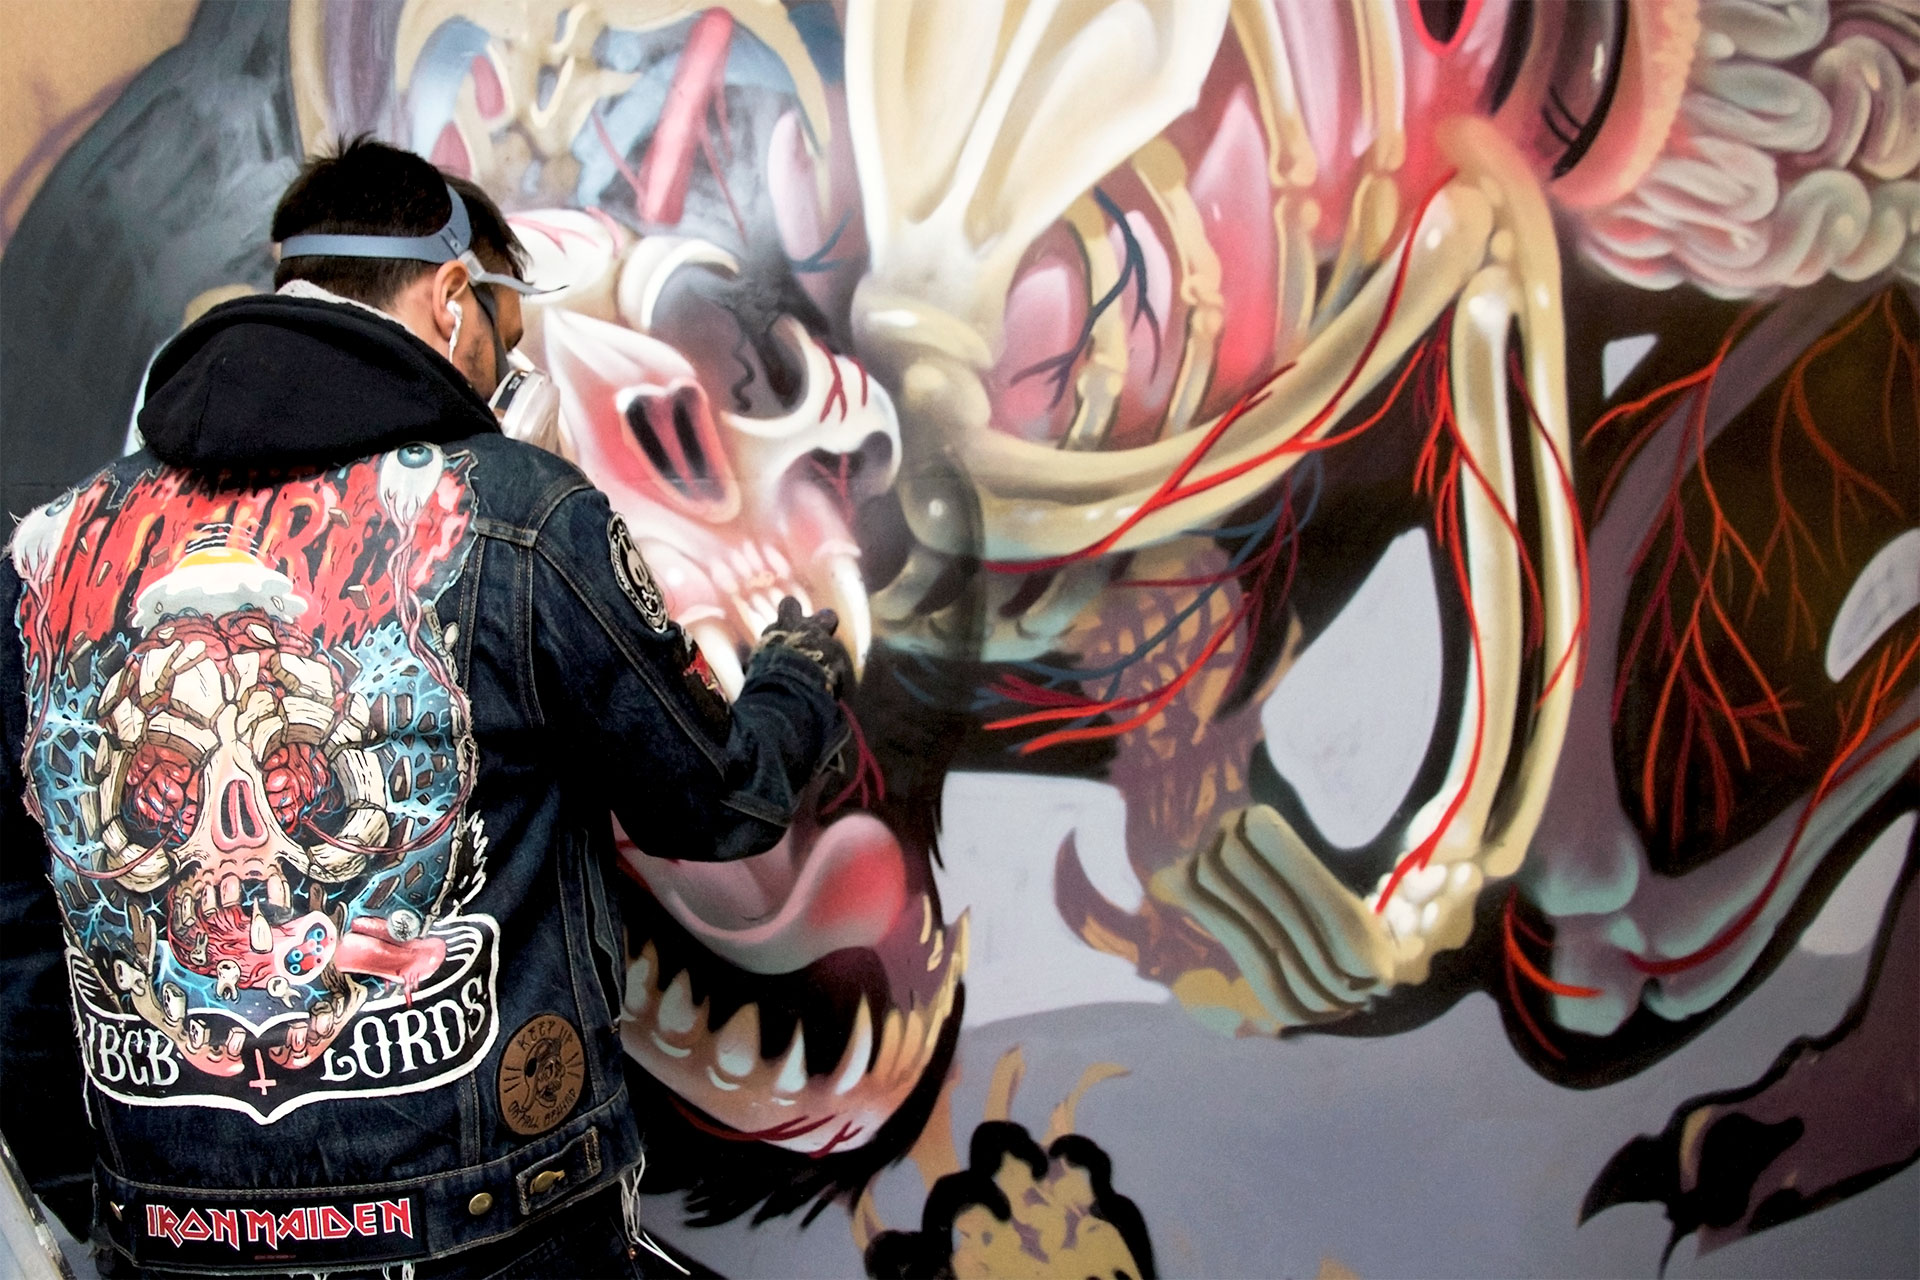 Nychos_UrbanNation_Berlin_Germany_2014_©HenrikHaven